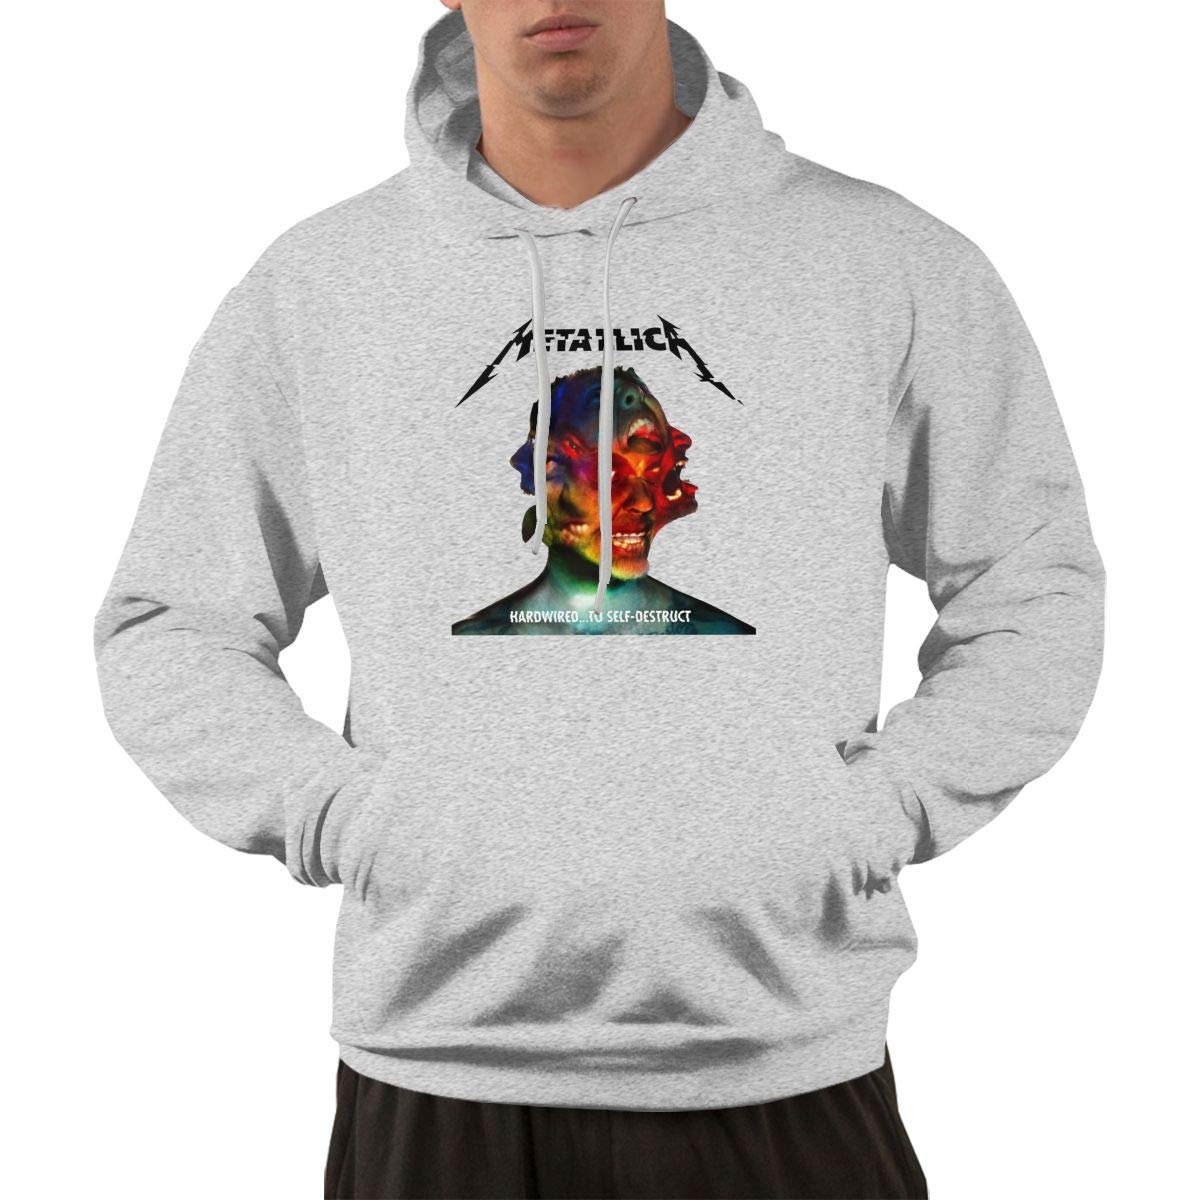 Aqlin Lewig Metallica Hardwired To Selfdestruct S Hooded S Pullovers Shirts